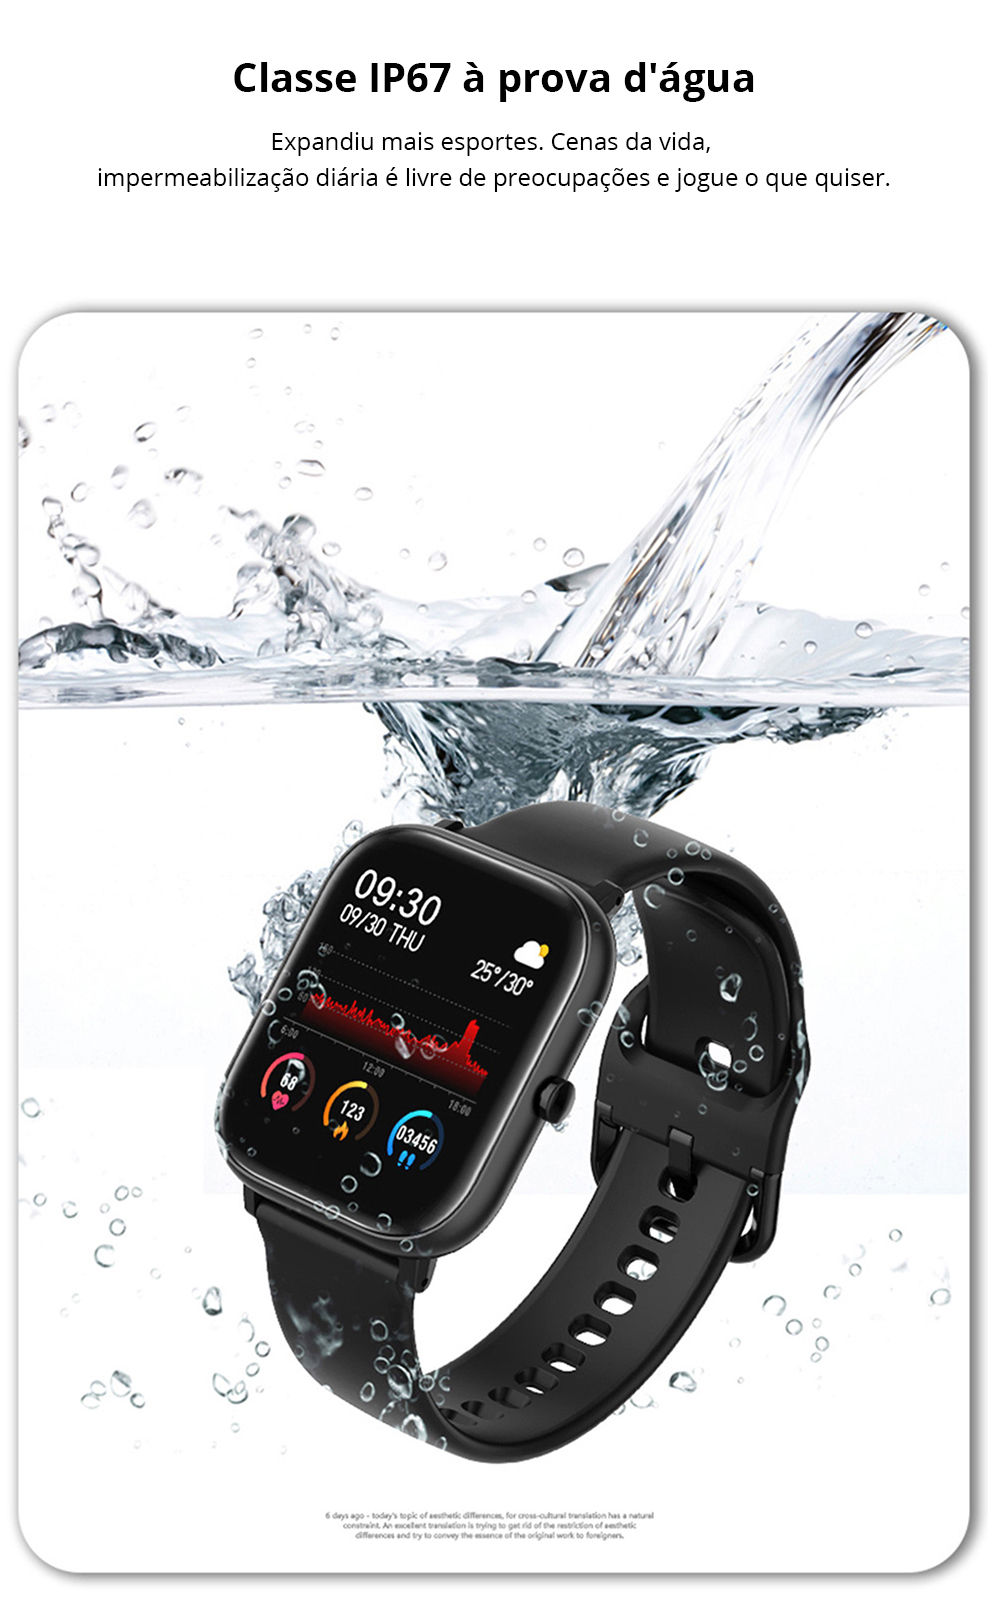 Hf4c6bc17f3a24743aa19491503cad267k SQR P8 SE Smart Watch Men Women 1.4 Inch Fitness Tracker Full Touch Screen Ip67 Waterproof Heart Rate Monitor for iOS Android